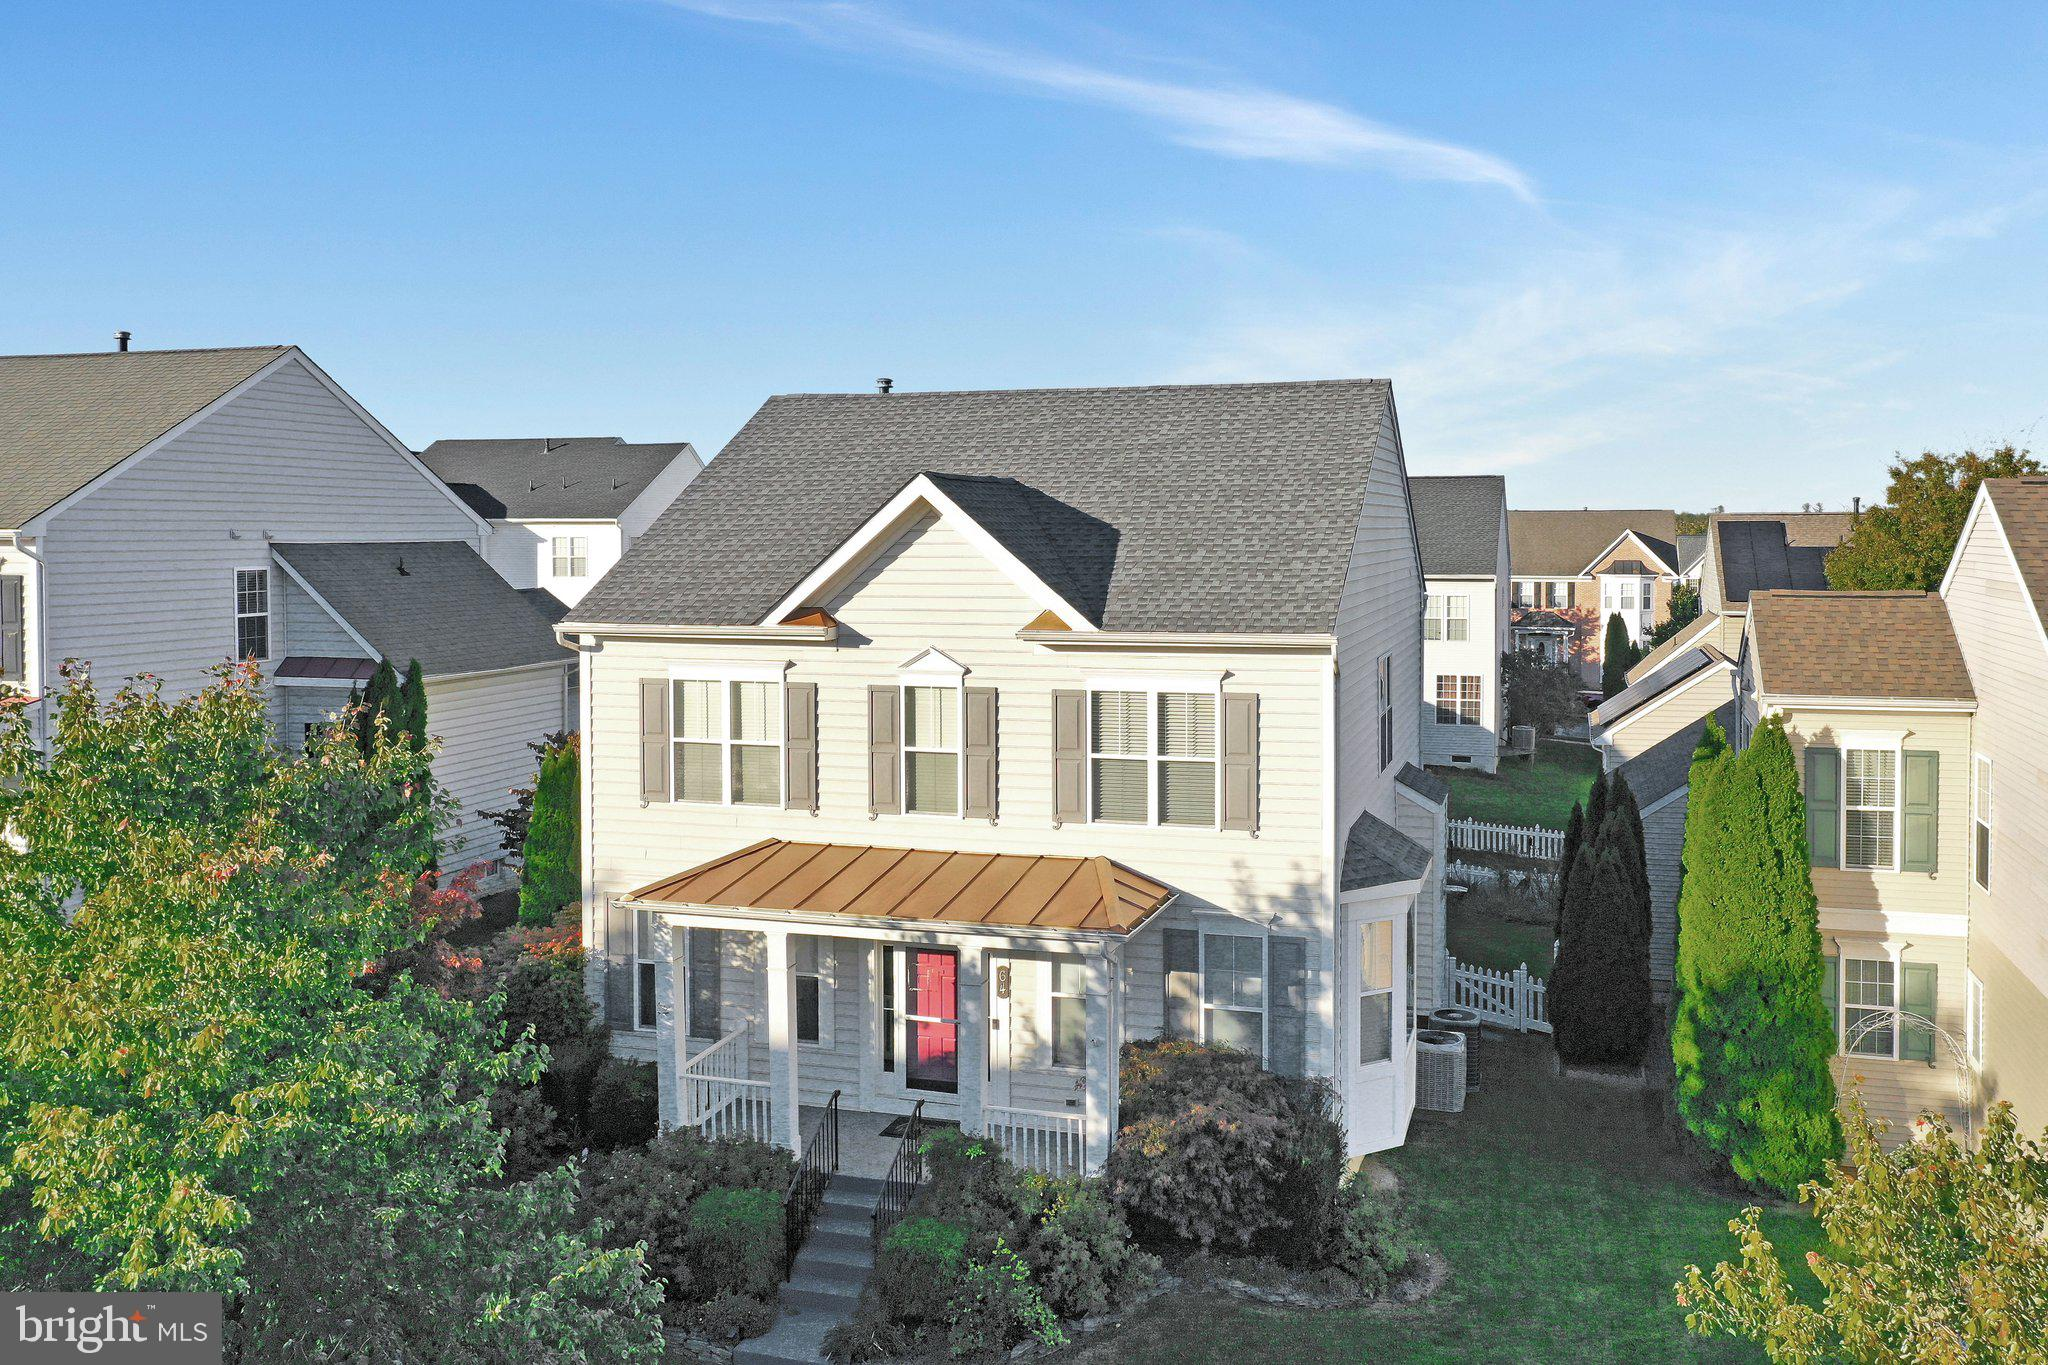 There's so much to love in this updated colonial in desirable Huntfield! This home is well-insulated